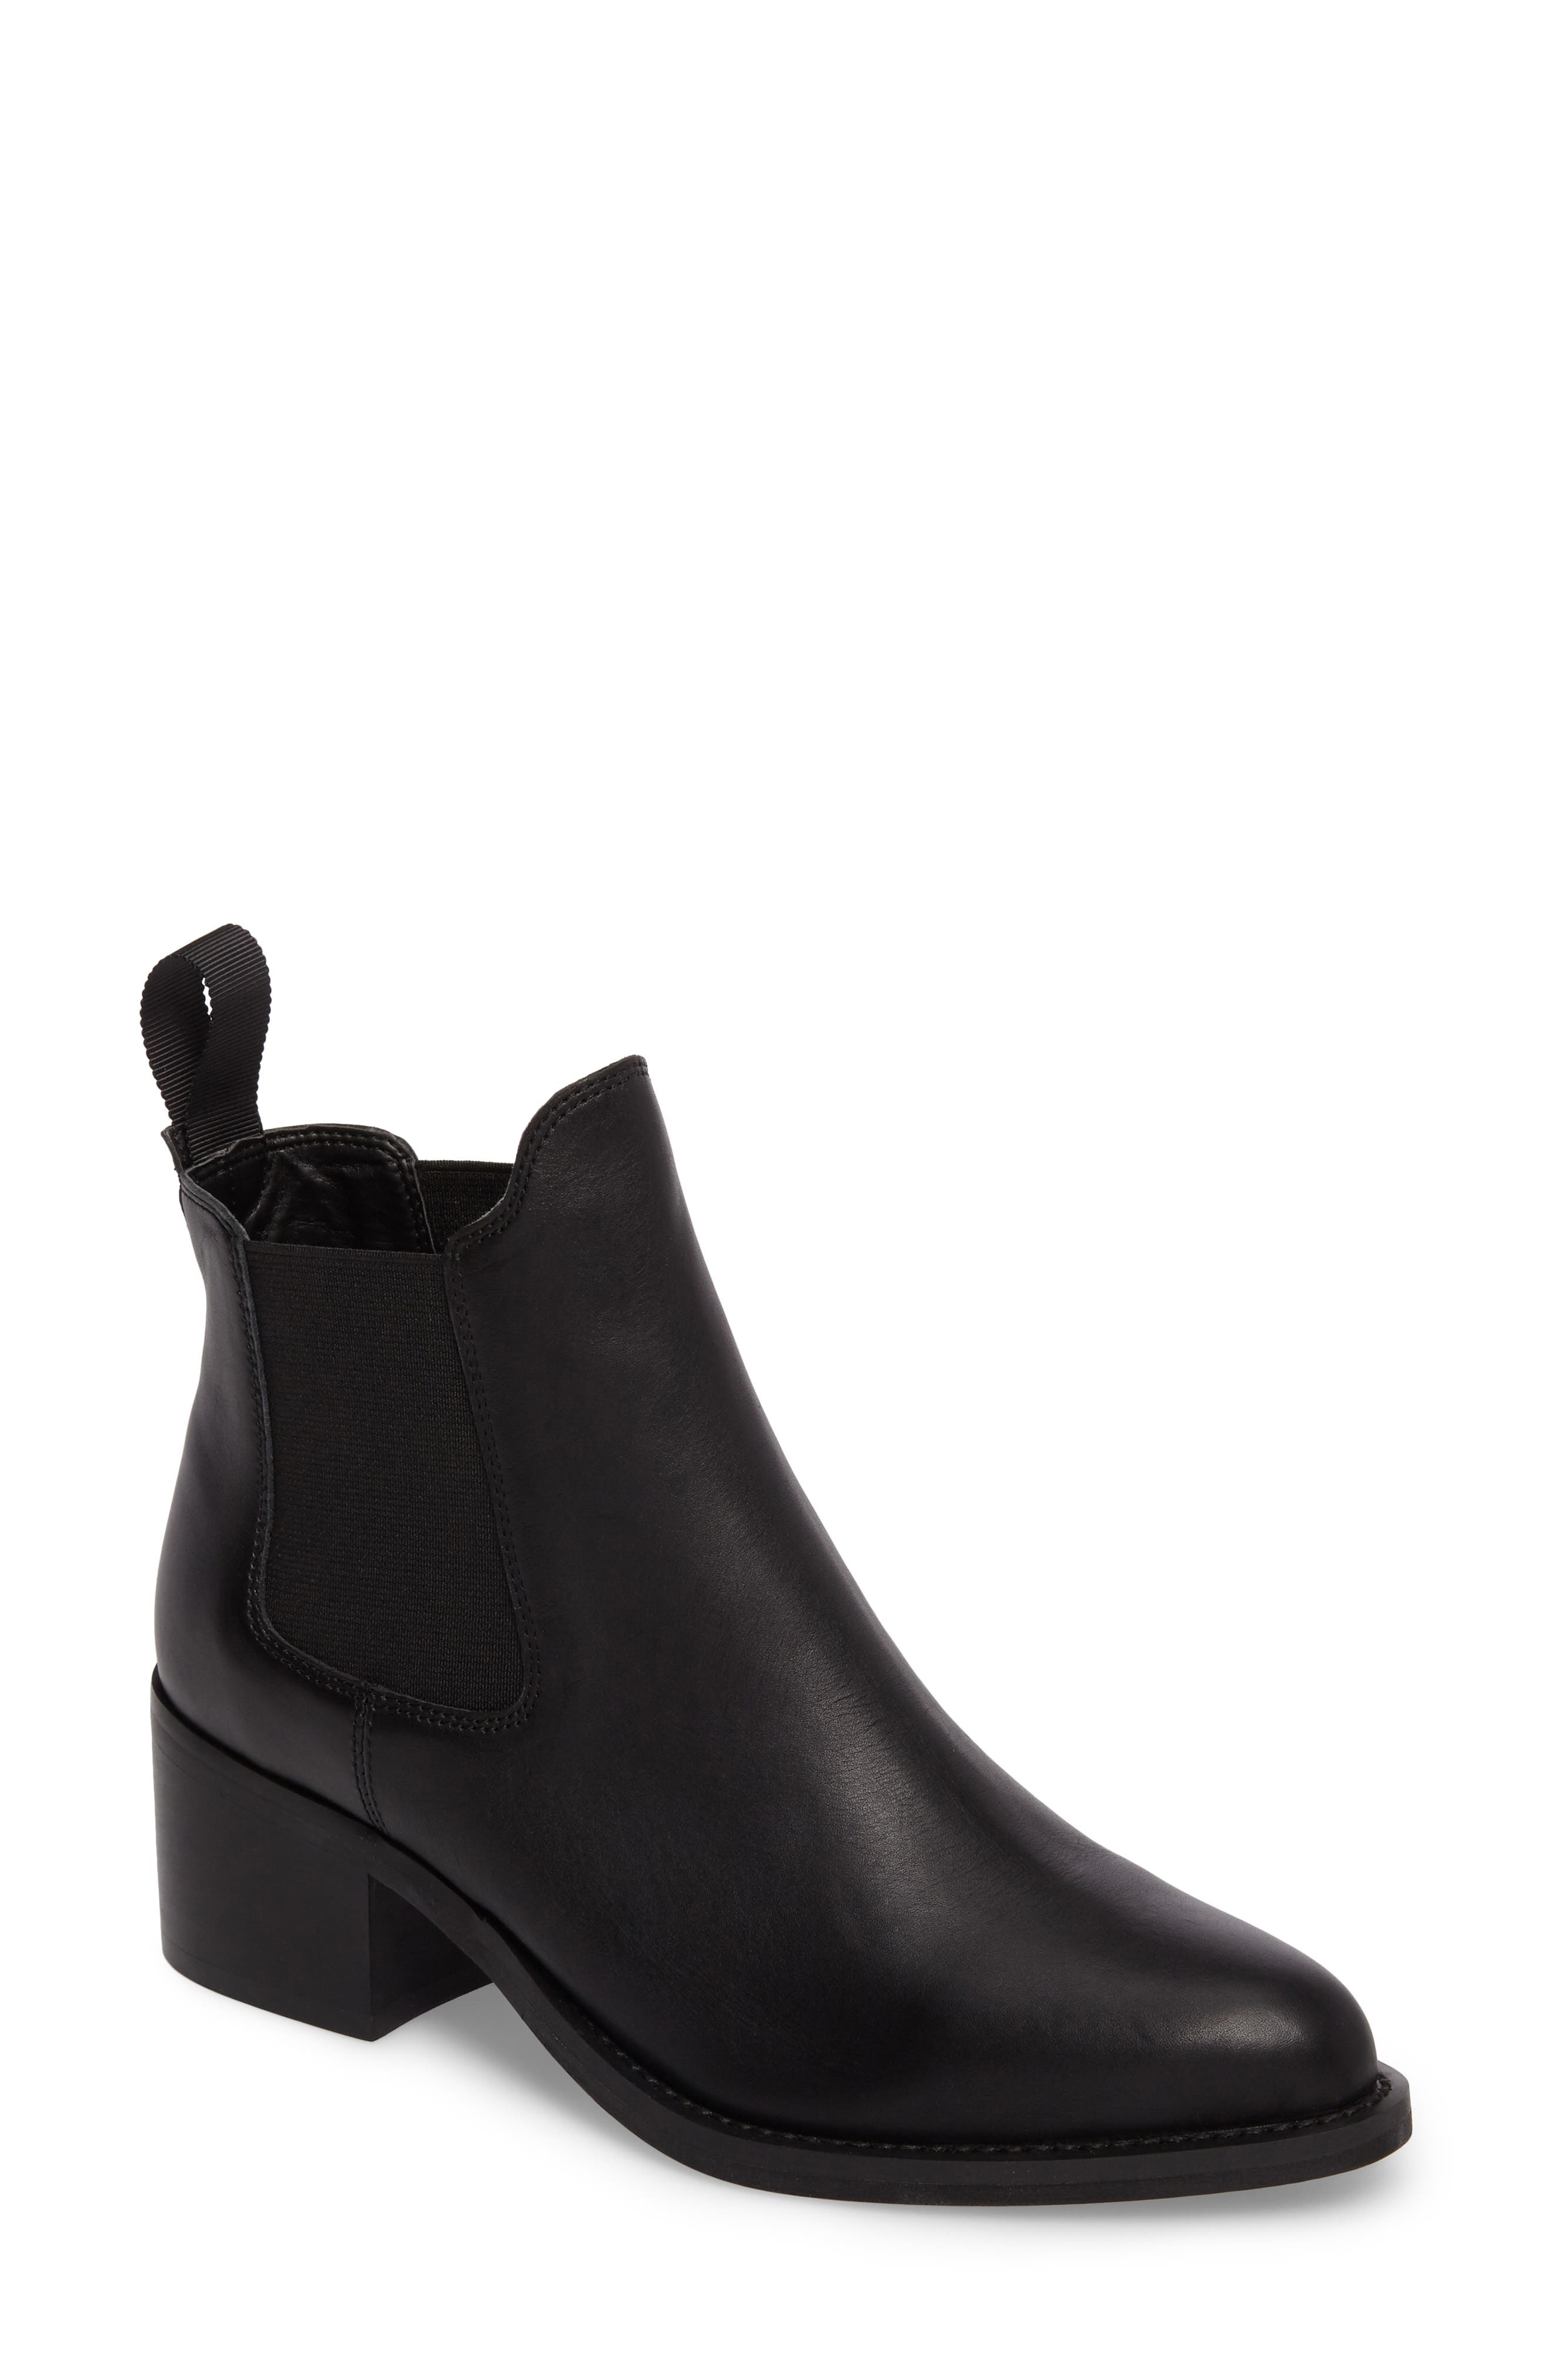 Fraya Ankle Bootie,                         Main,                         color, BLACK LEATHER